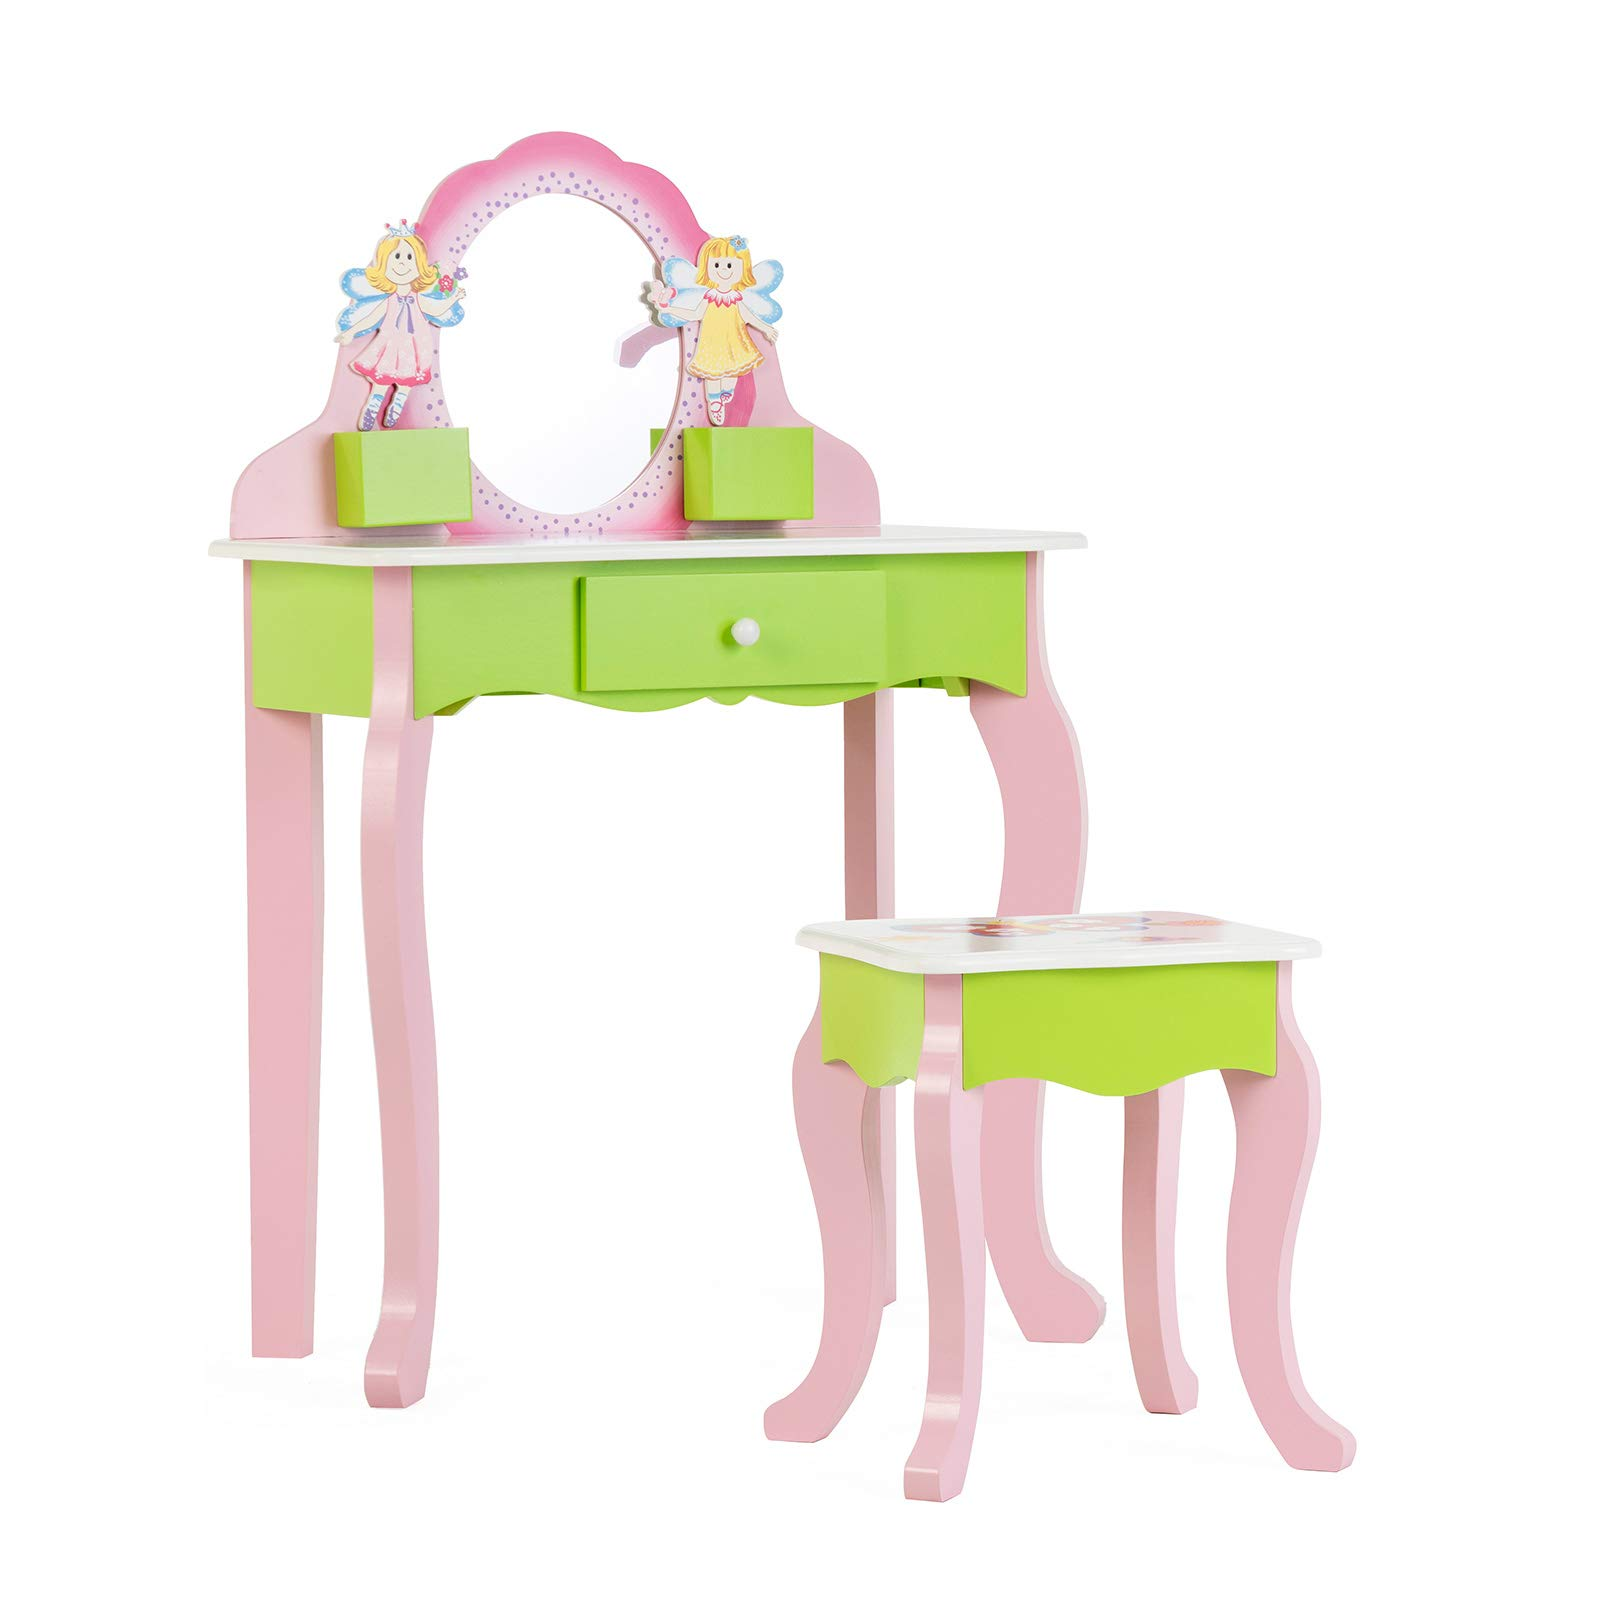 Mecor Little Girls Vanity Table w/Flower Mirror,Kids Makeup Vanity Set with Stool,Non-Toxic Hand Painted Vanity Desk for Children Pink&Green